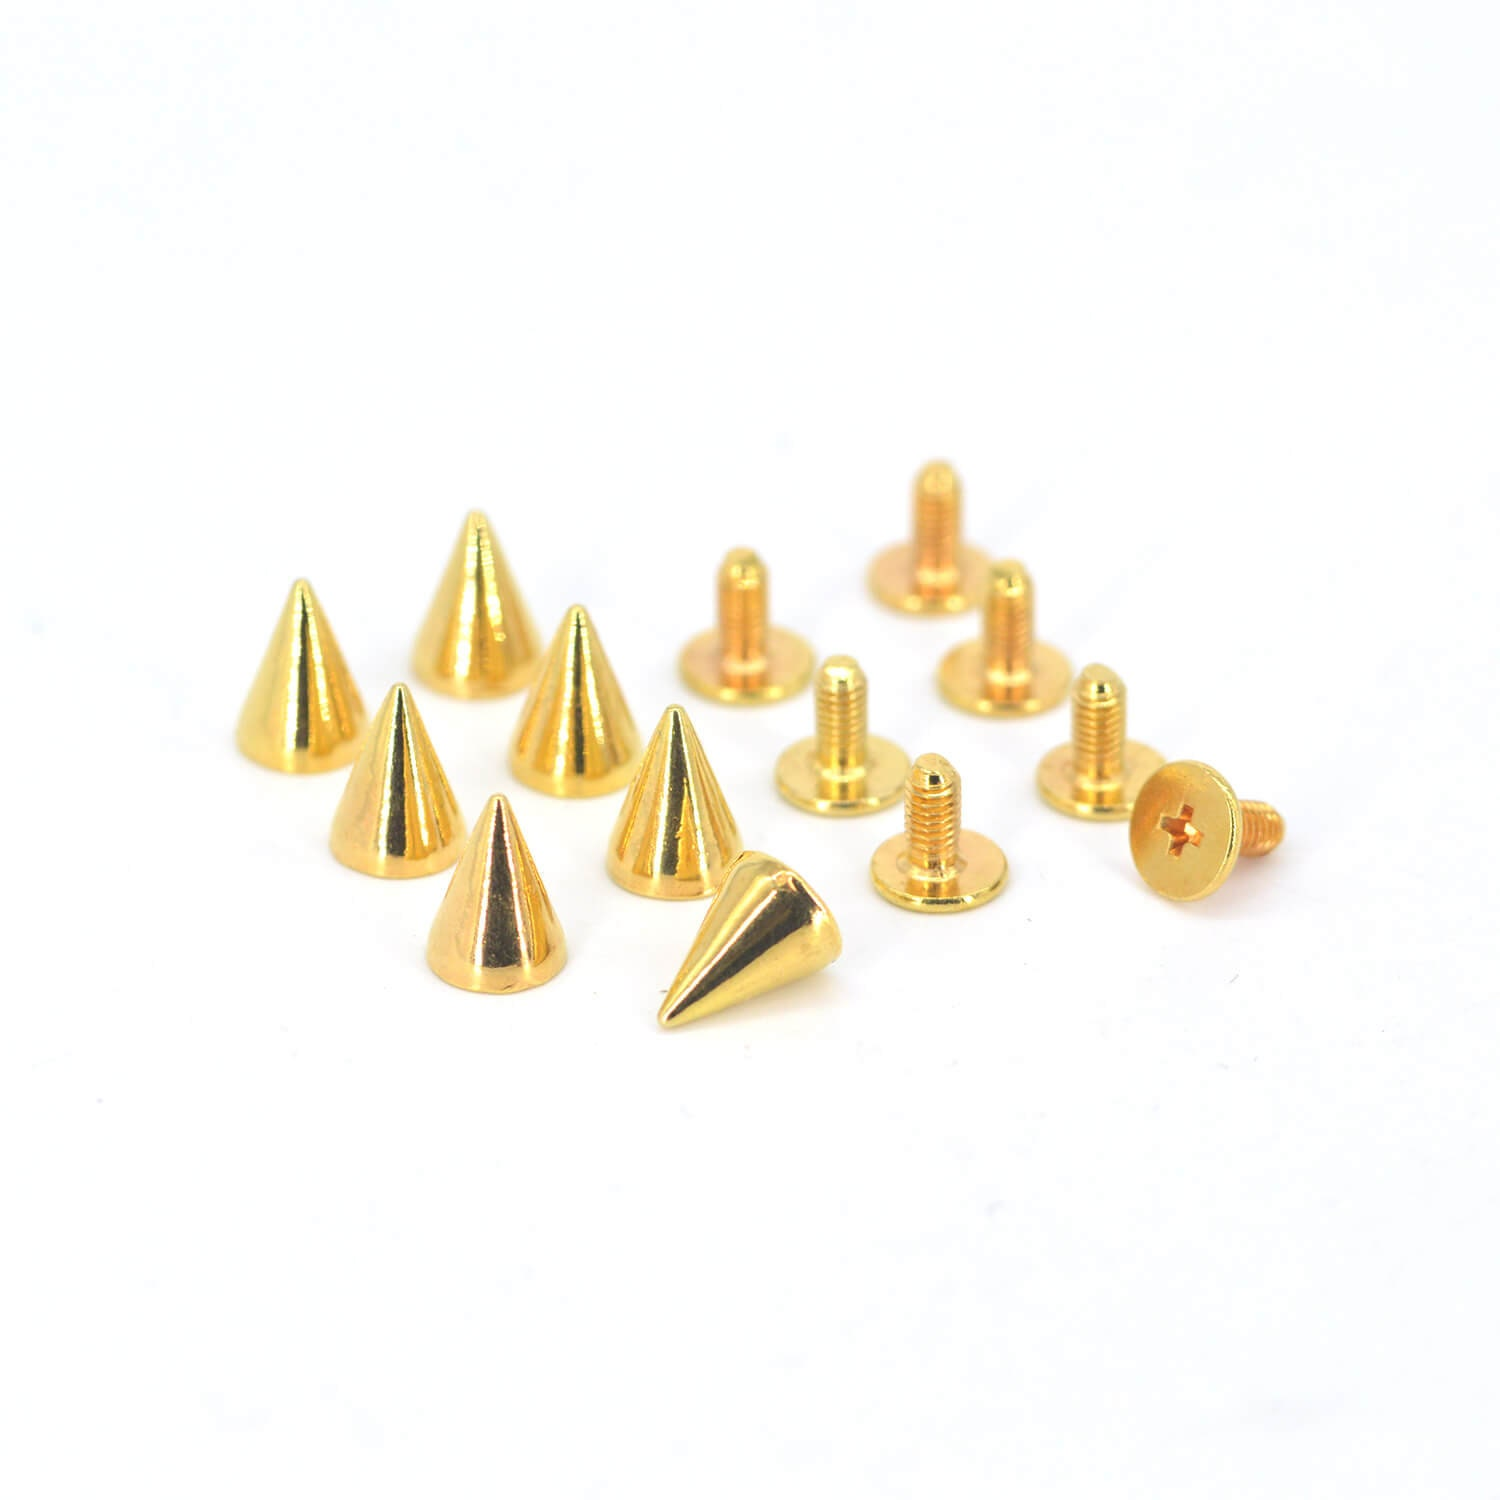 50PCS GOLD Cone Rivets Screw Punk Studs Leather Crafts